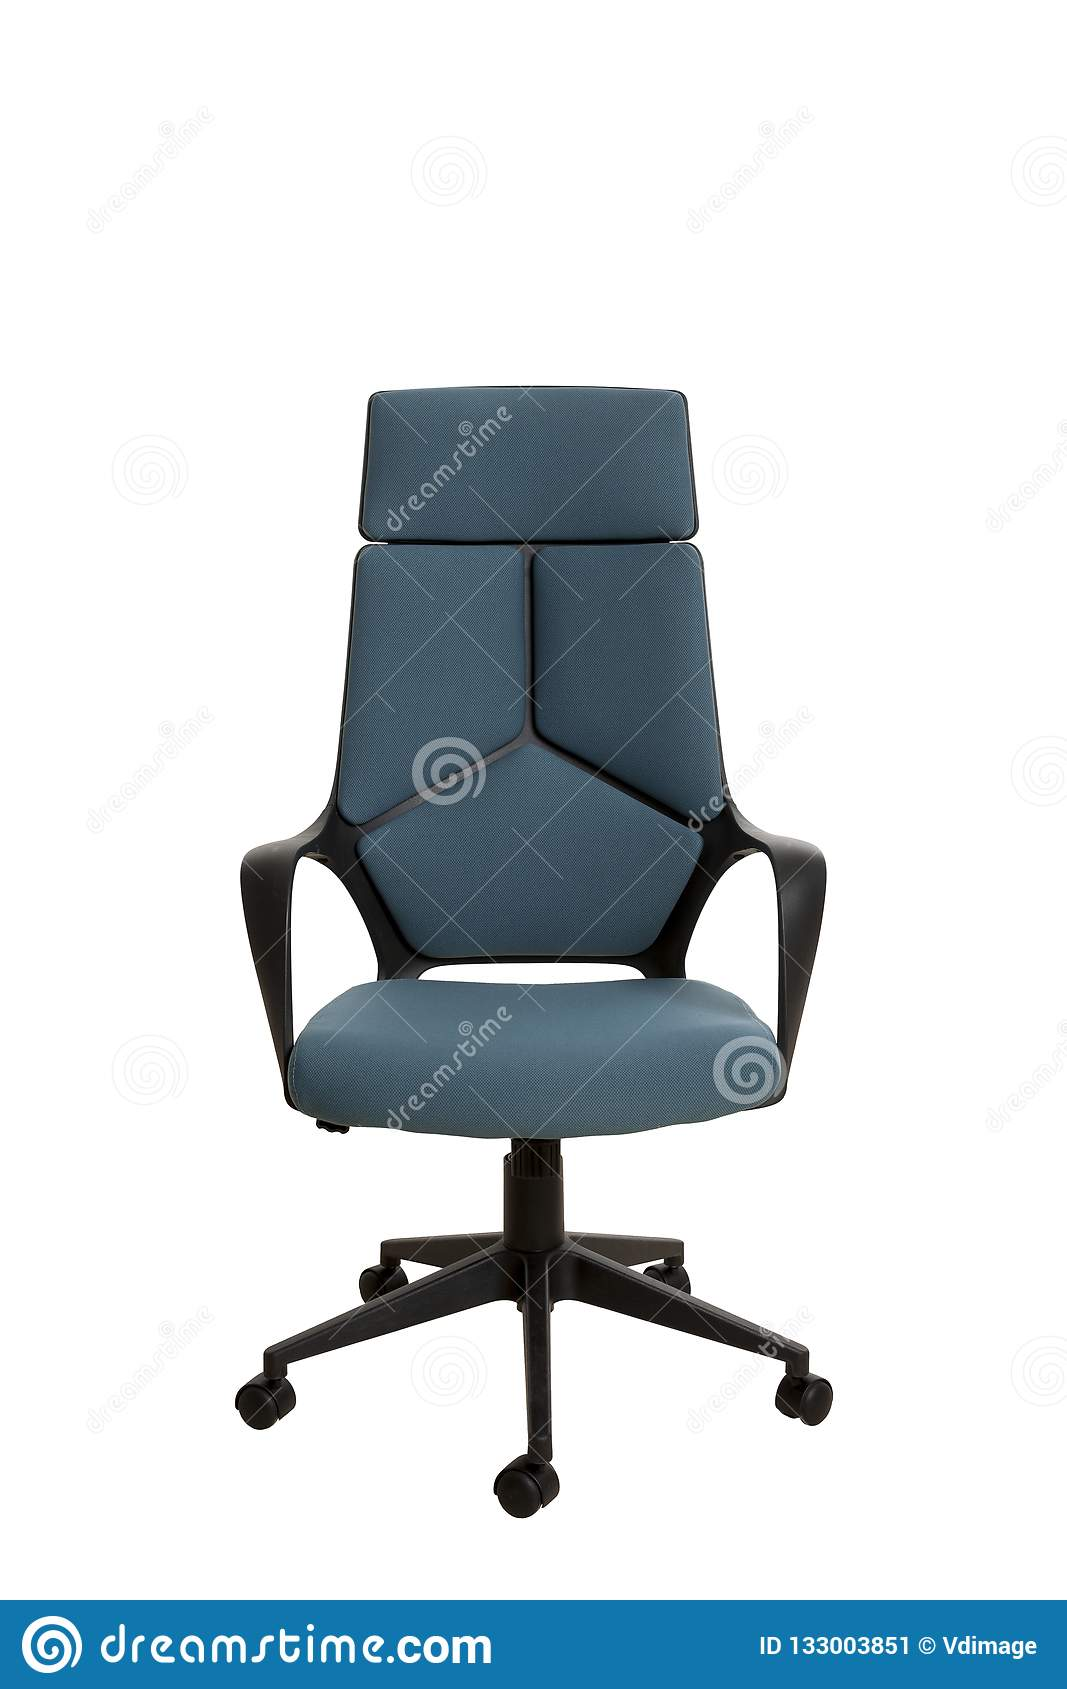 Strange Front View Of A Modern Office Chair Made Of Black Plastic Ncnpc Chair Design For Home Ncnpcorg